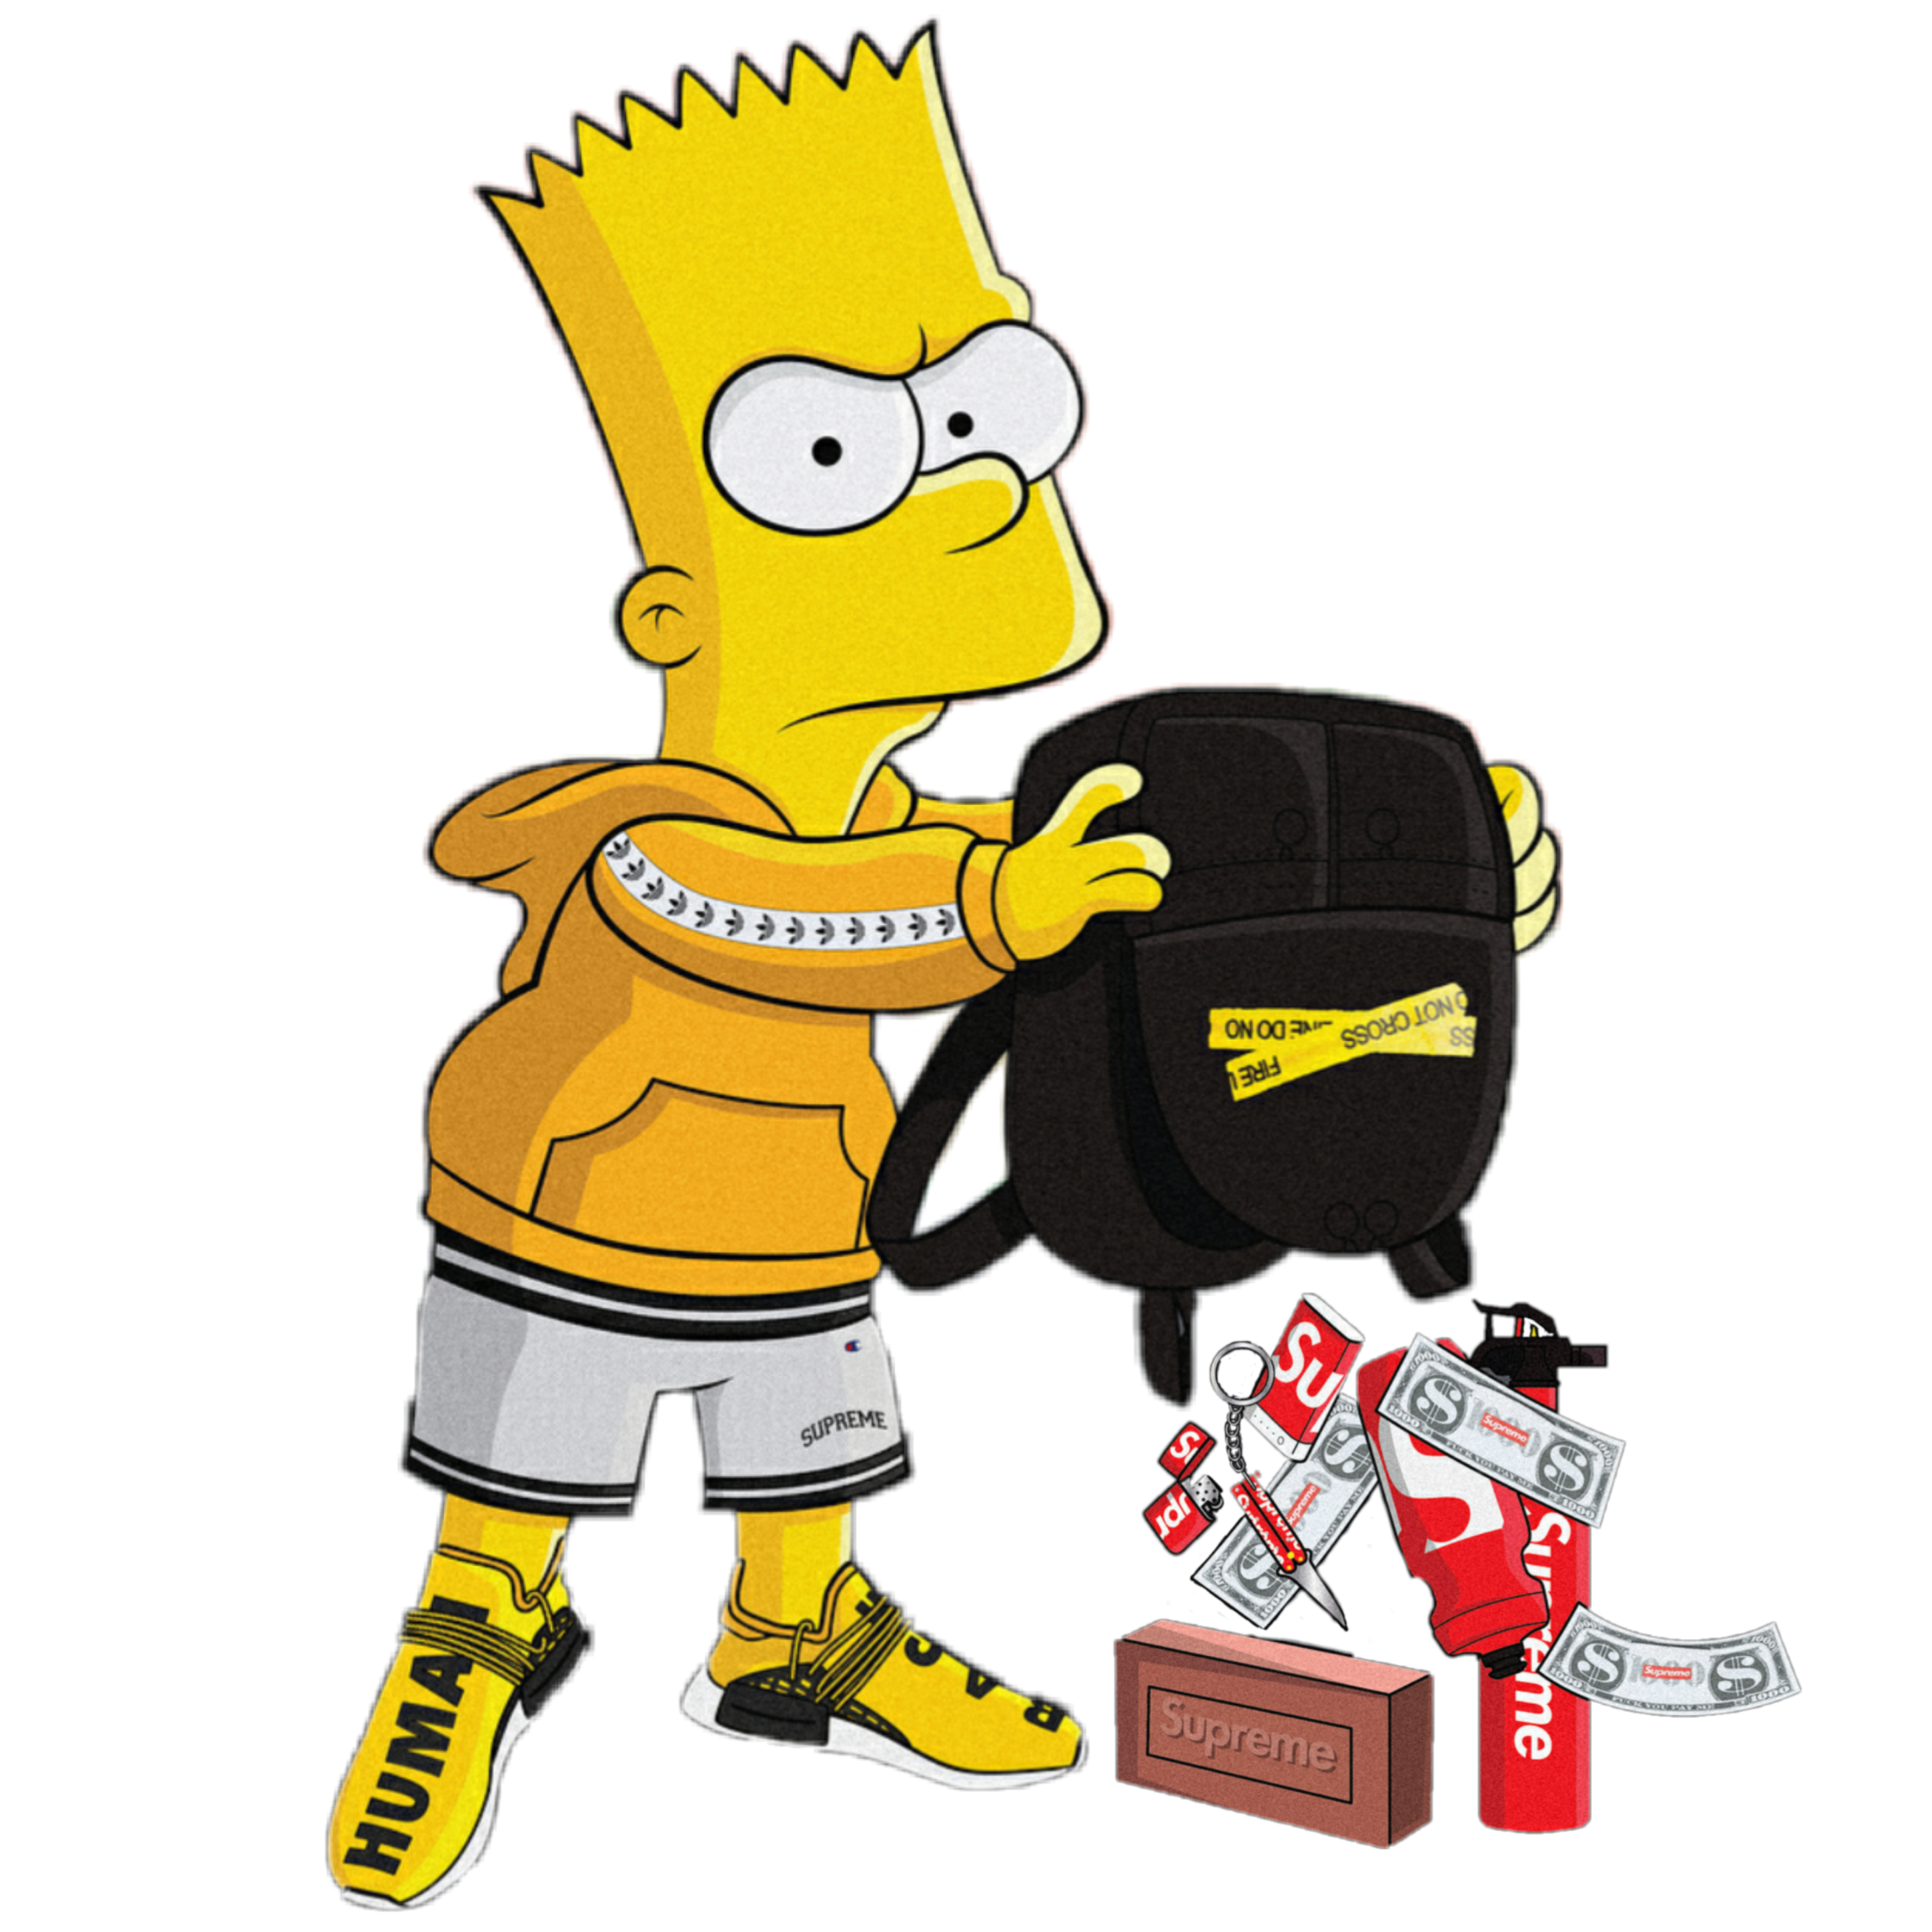 Simpsons drawing supreme. Bart simpson gucci brick